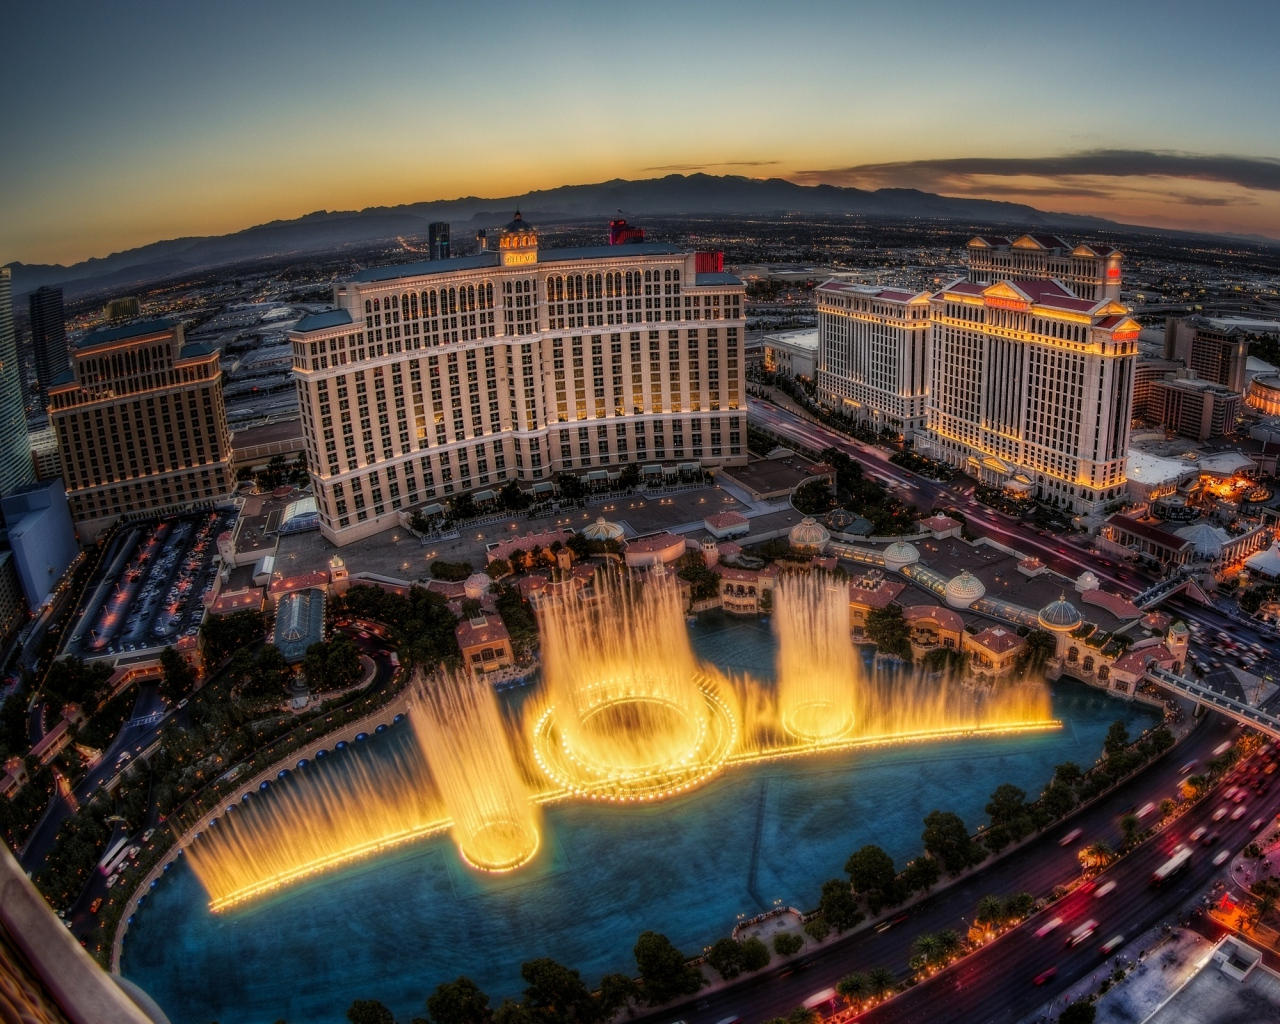 Bellagio from Ocean's 11 is one of the most glamorous movie hotels for good reason.